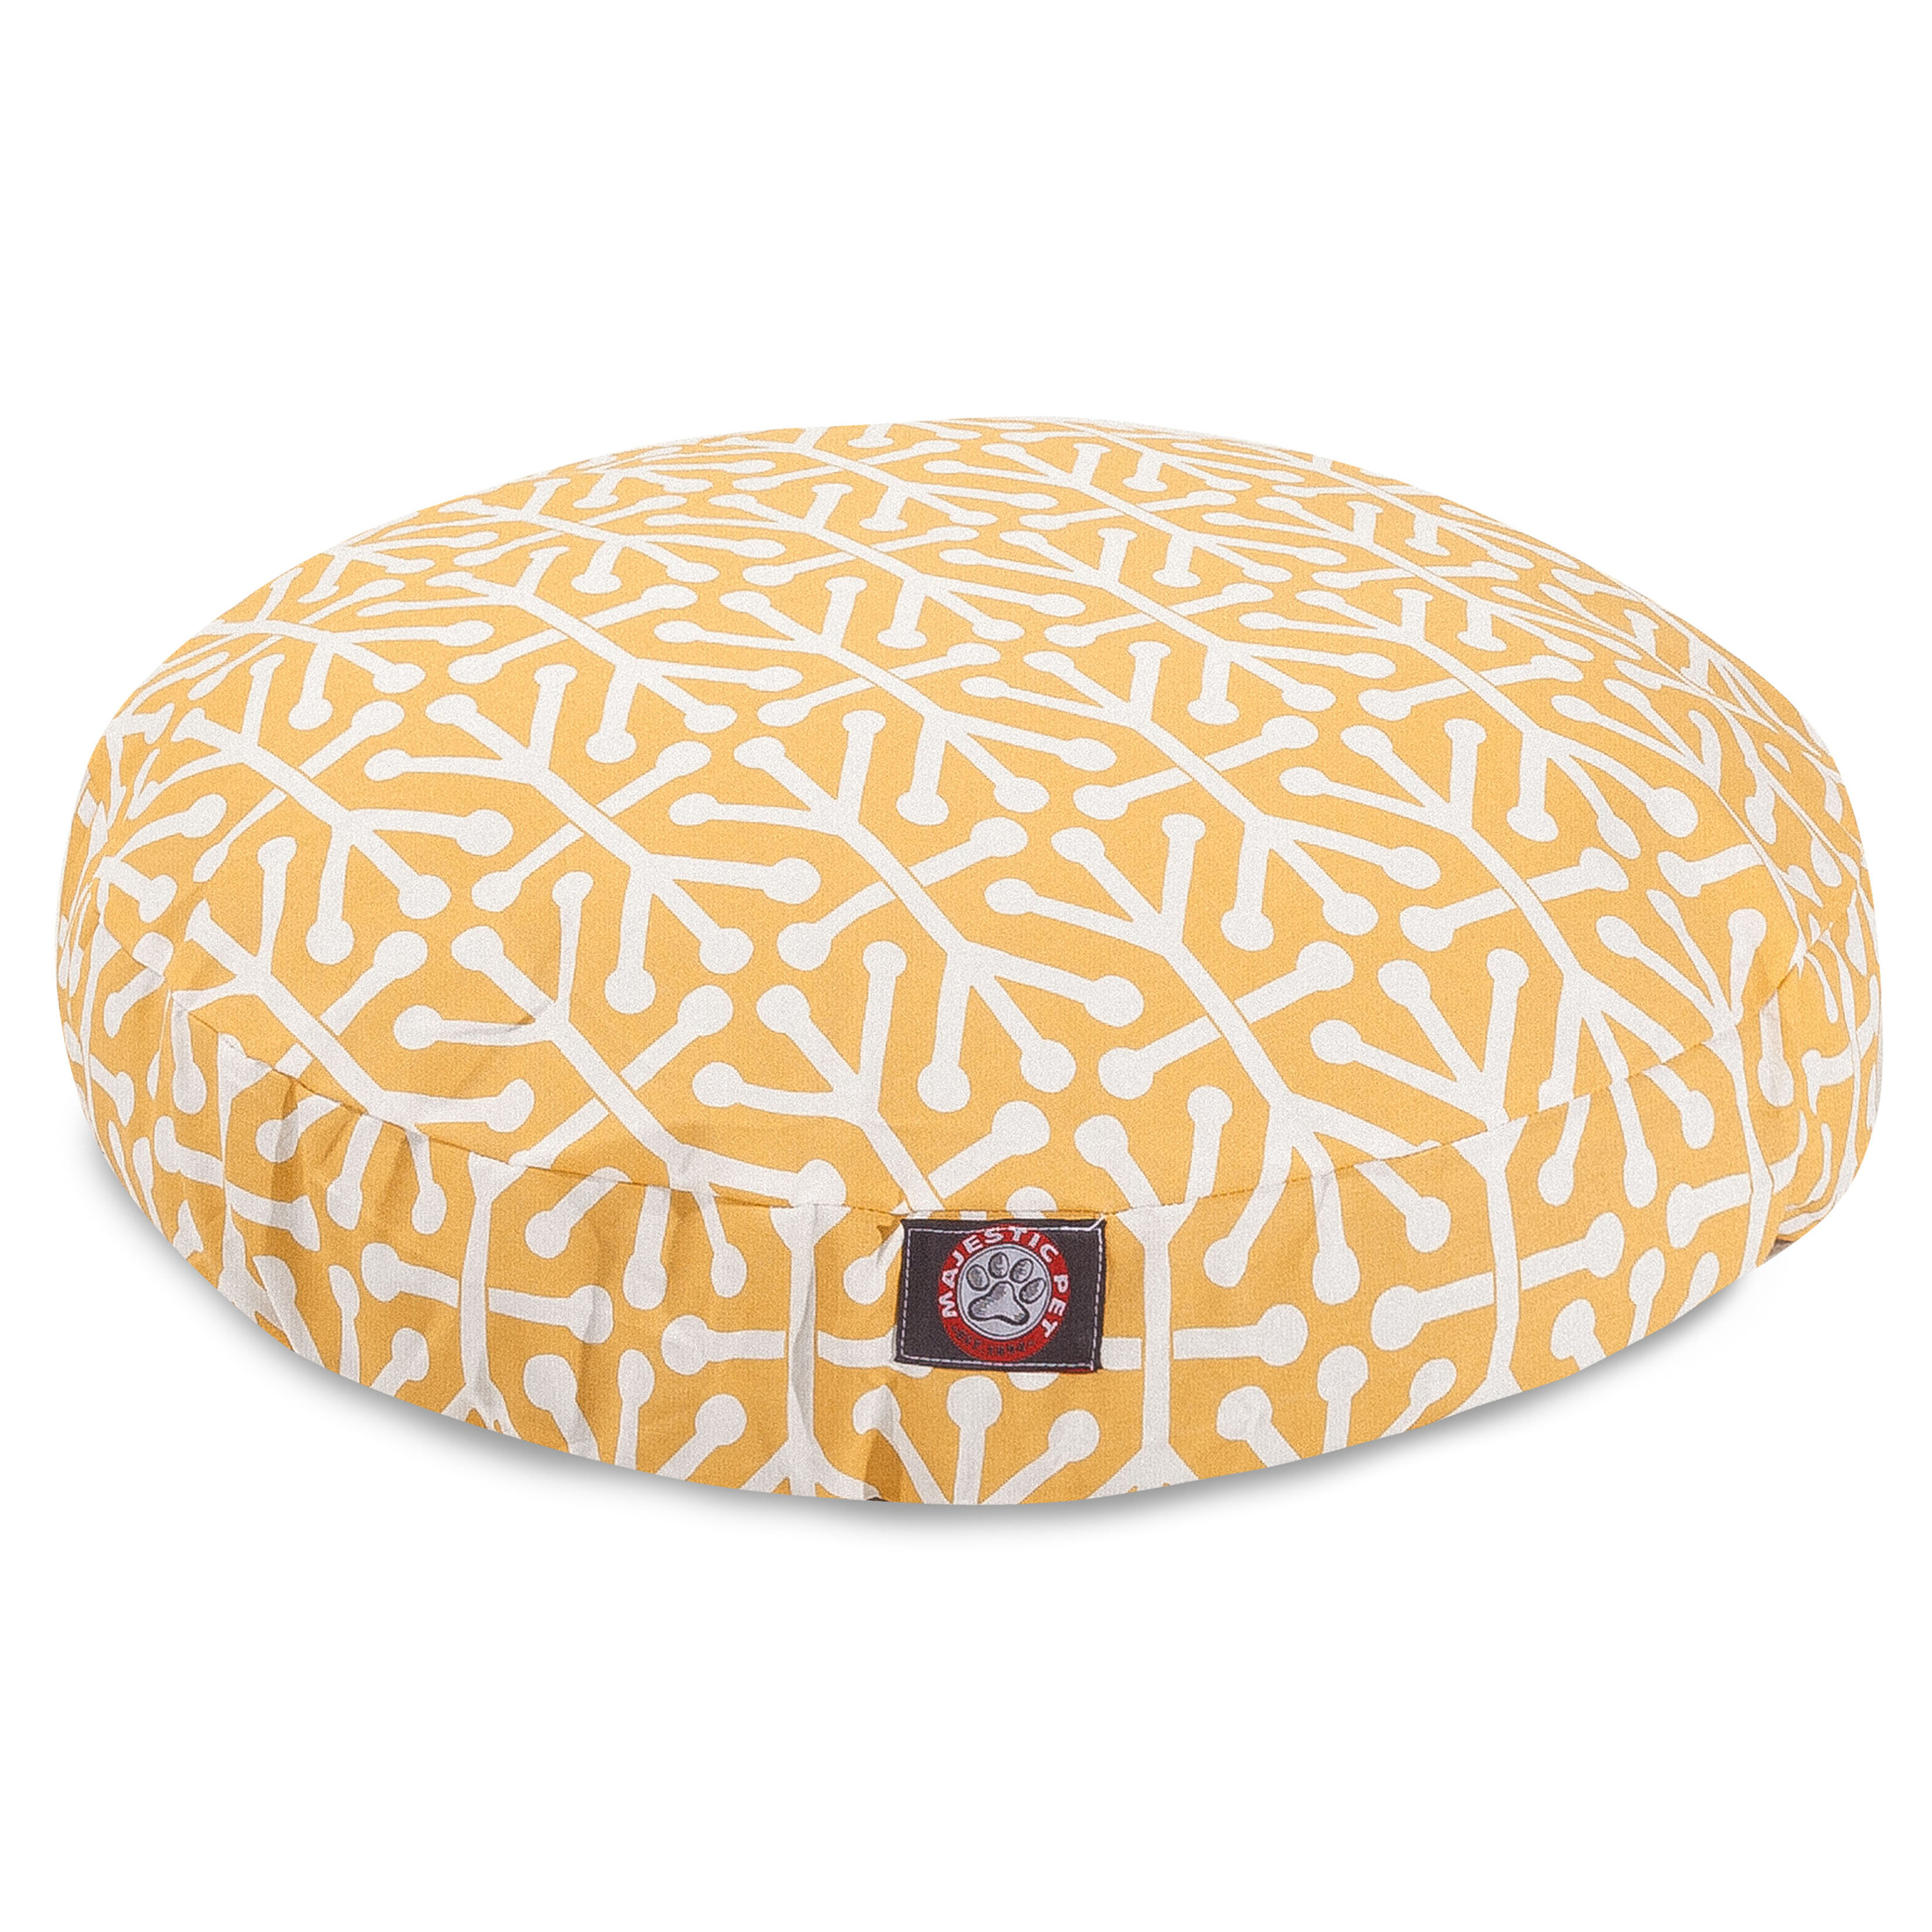 Majestic Pet Aruba Round Dog Bed Treated Polyester Removable Cover Machine Washable